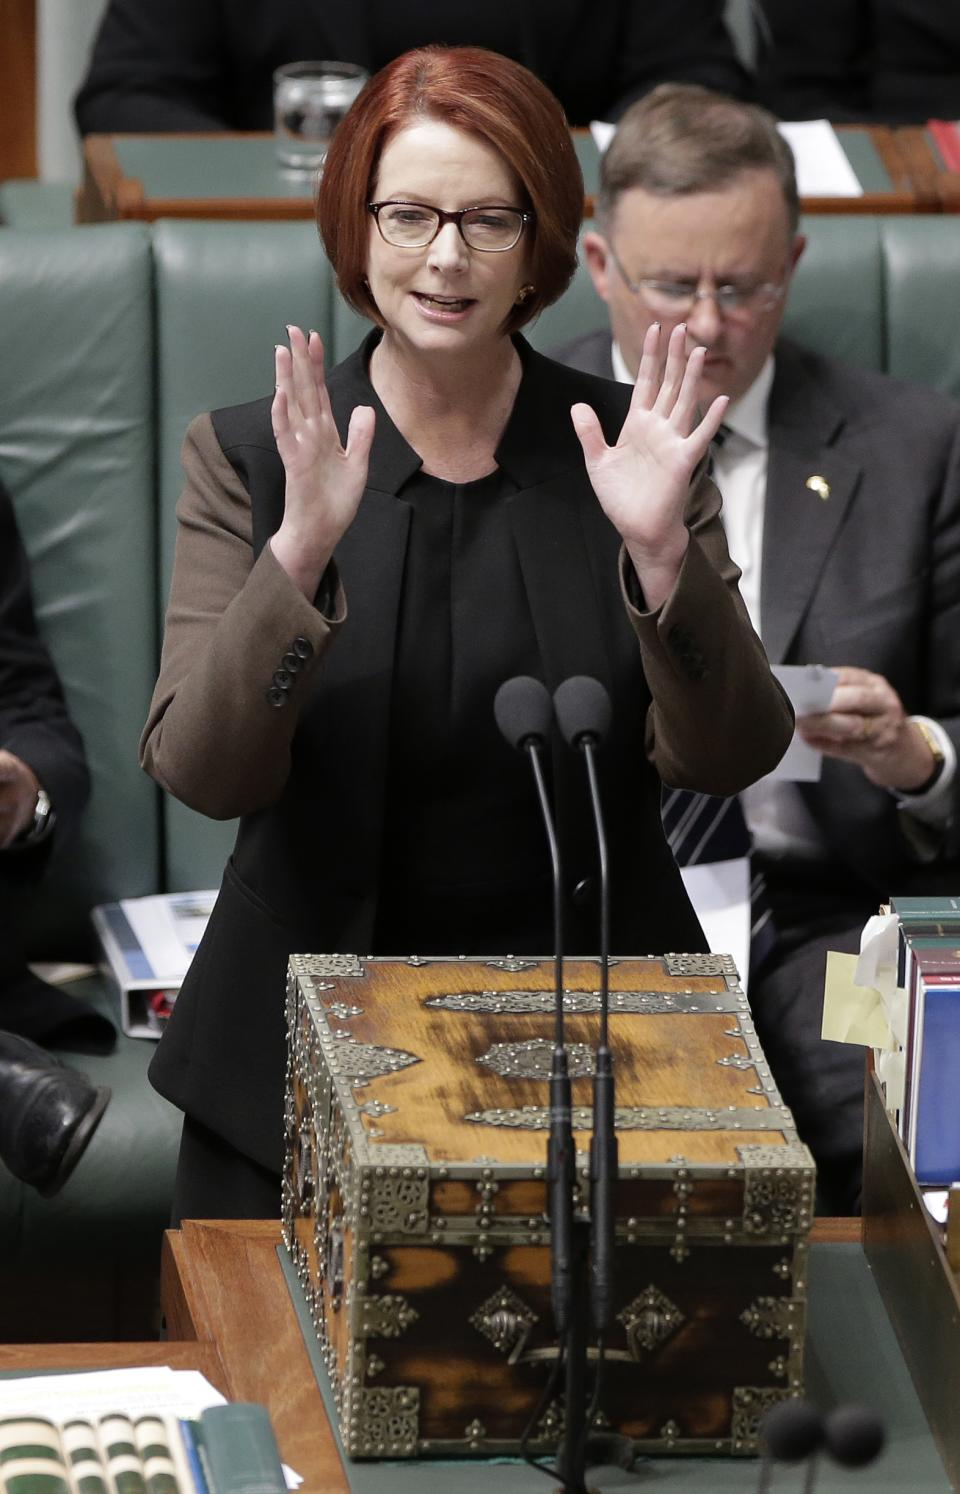 Australian Prime Minister Julia Gillard speaks in the parliament in Canberra, Australia, Wednesday, June 26, 2013. Supporters of Gillard's chief intra-party rival are again pushing for a vote to oust the Australian prime minister this week. (AP Photo/Rick Rycroft)